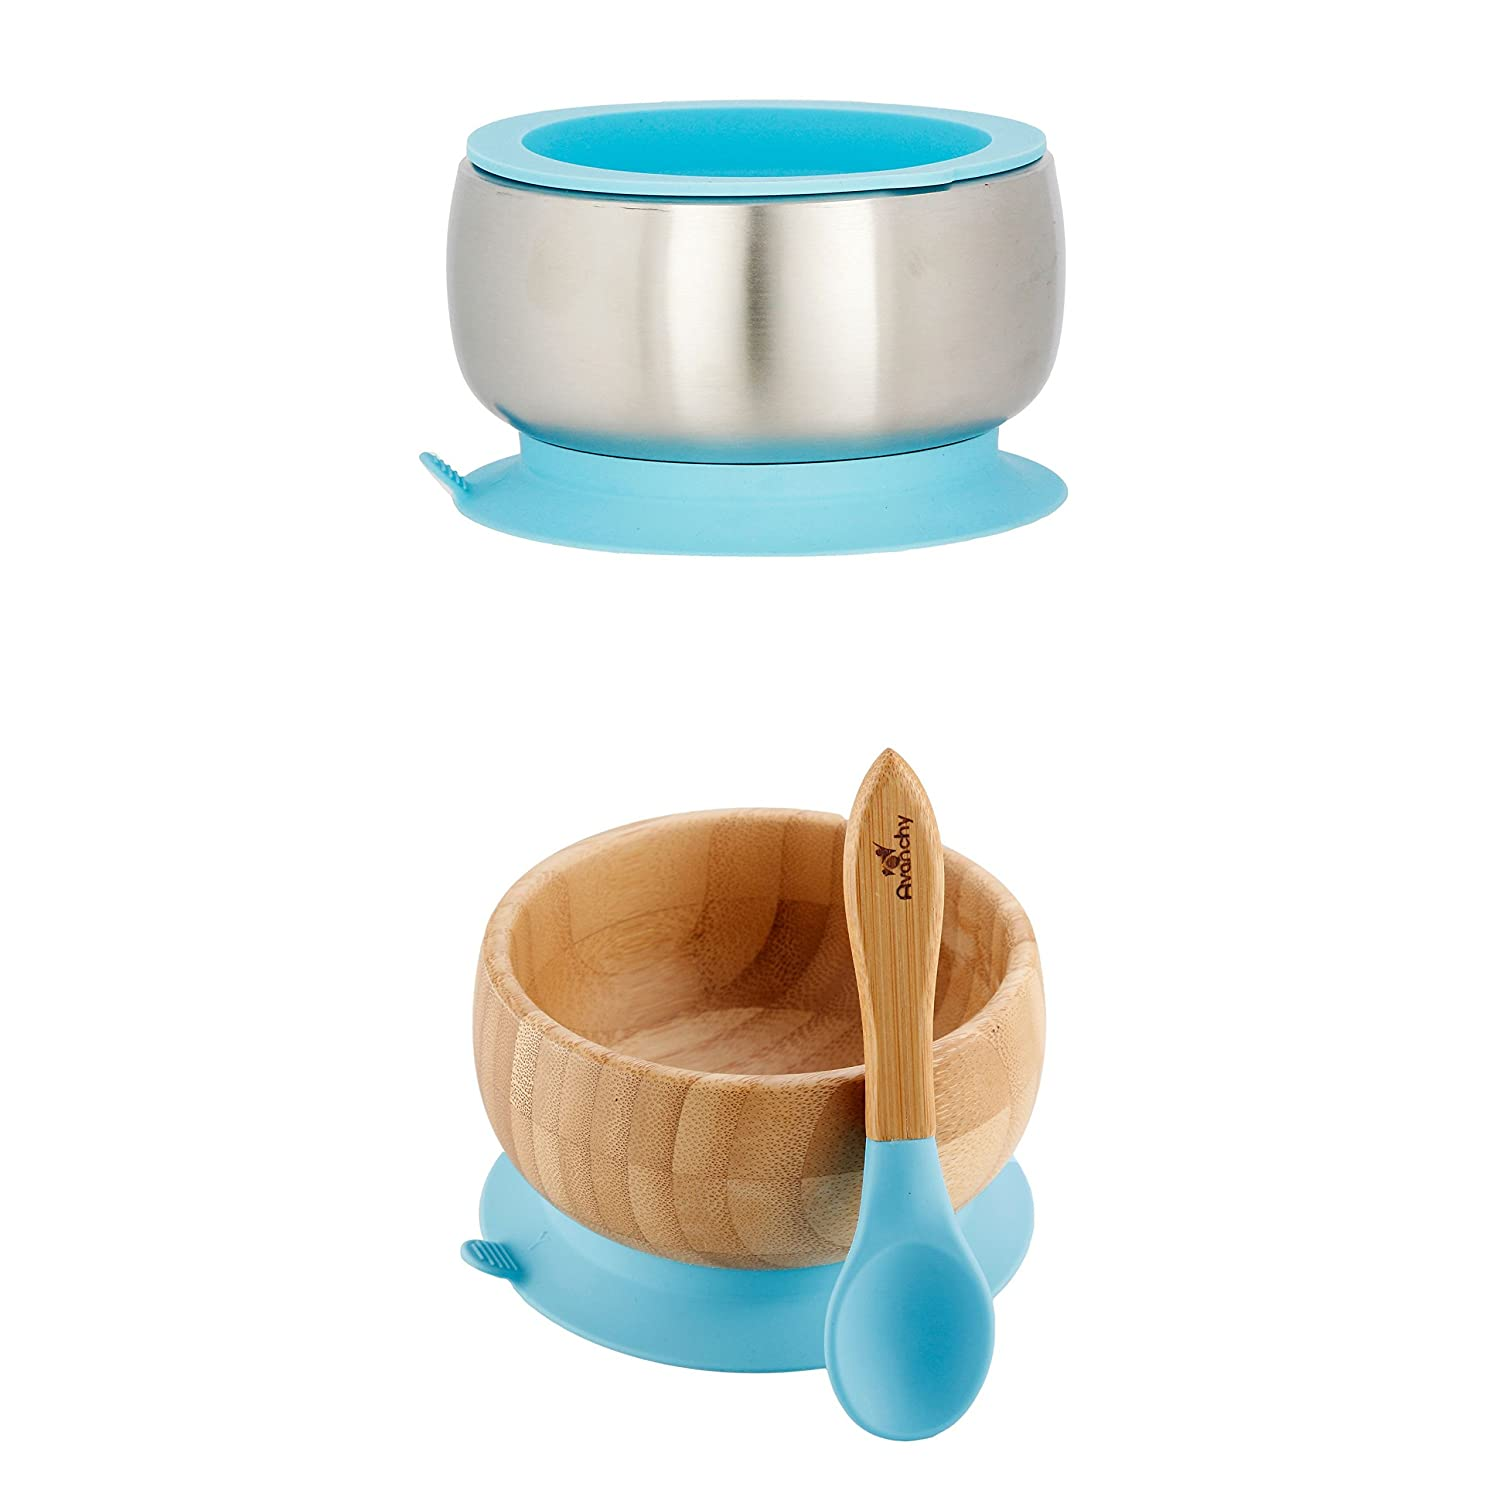 Avanchy Stainless Steel Bowl, Bamboo Suction Bowl & Baby Spoon - Stainless Steel Kids Bowls - Suction Bowls with Lids - Silicon Suction (Blue)